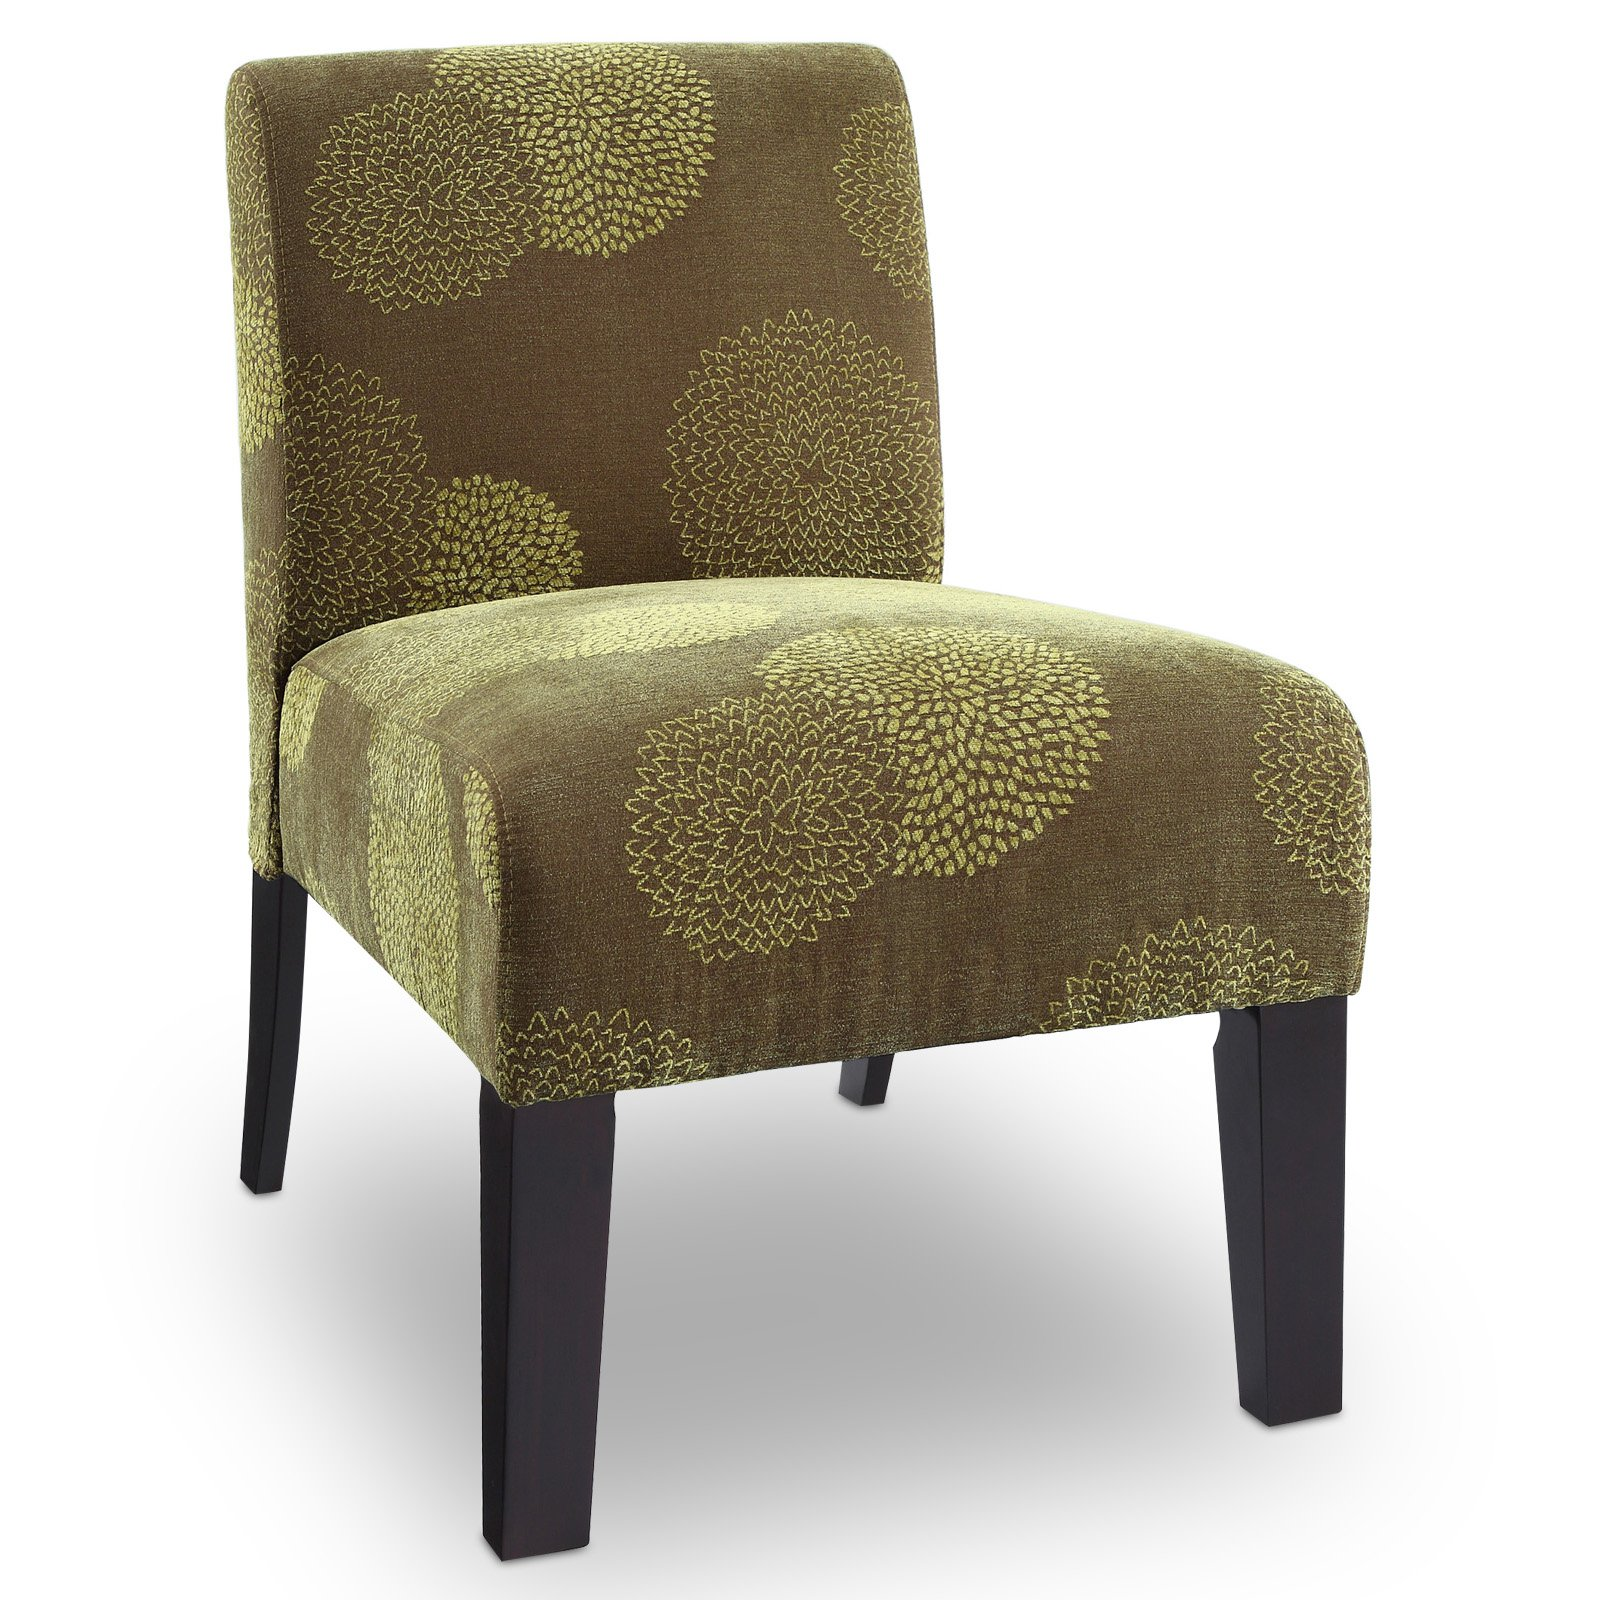 Deco Accent Chair - Sunflower